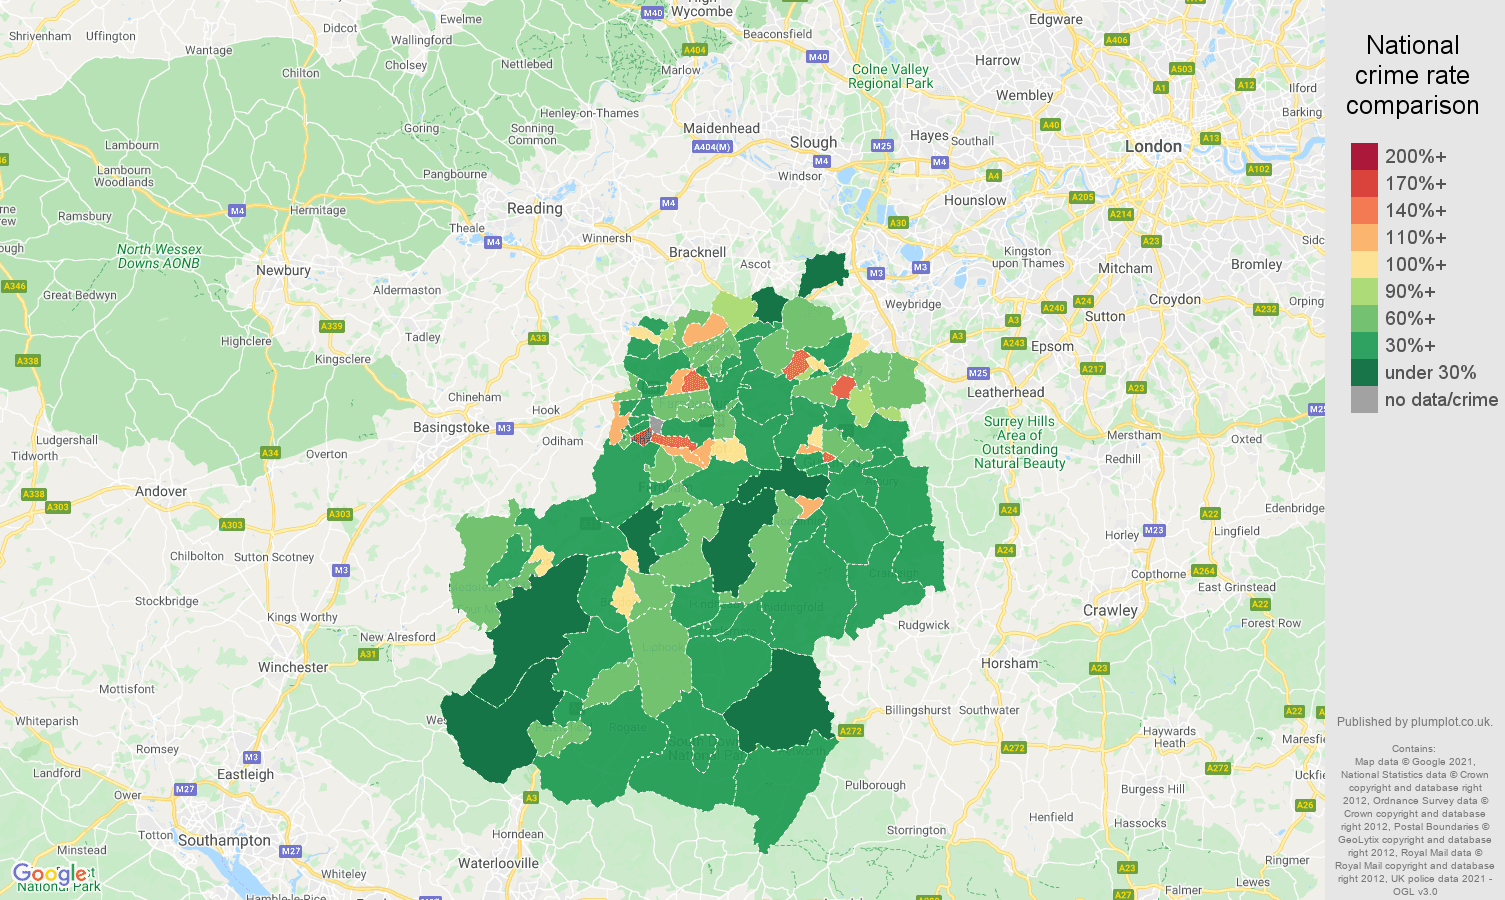 Guildford violent crime rate comparison map